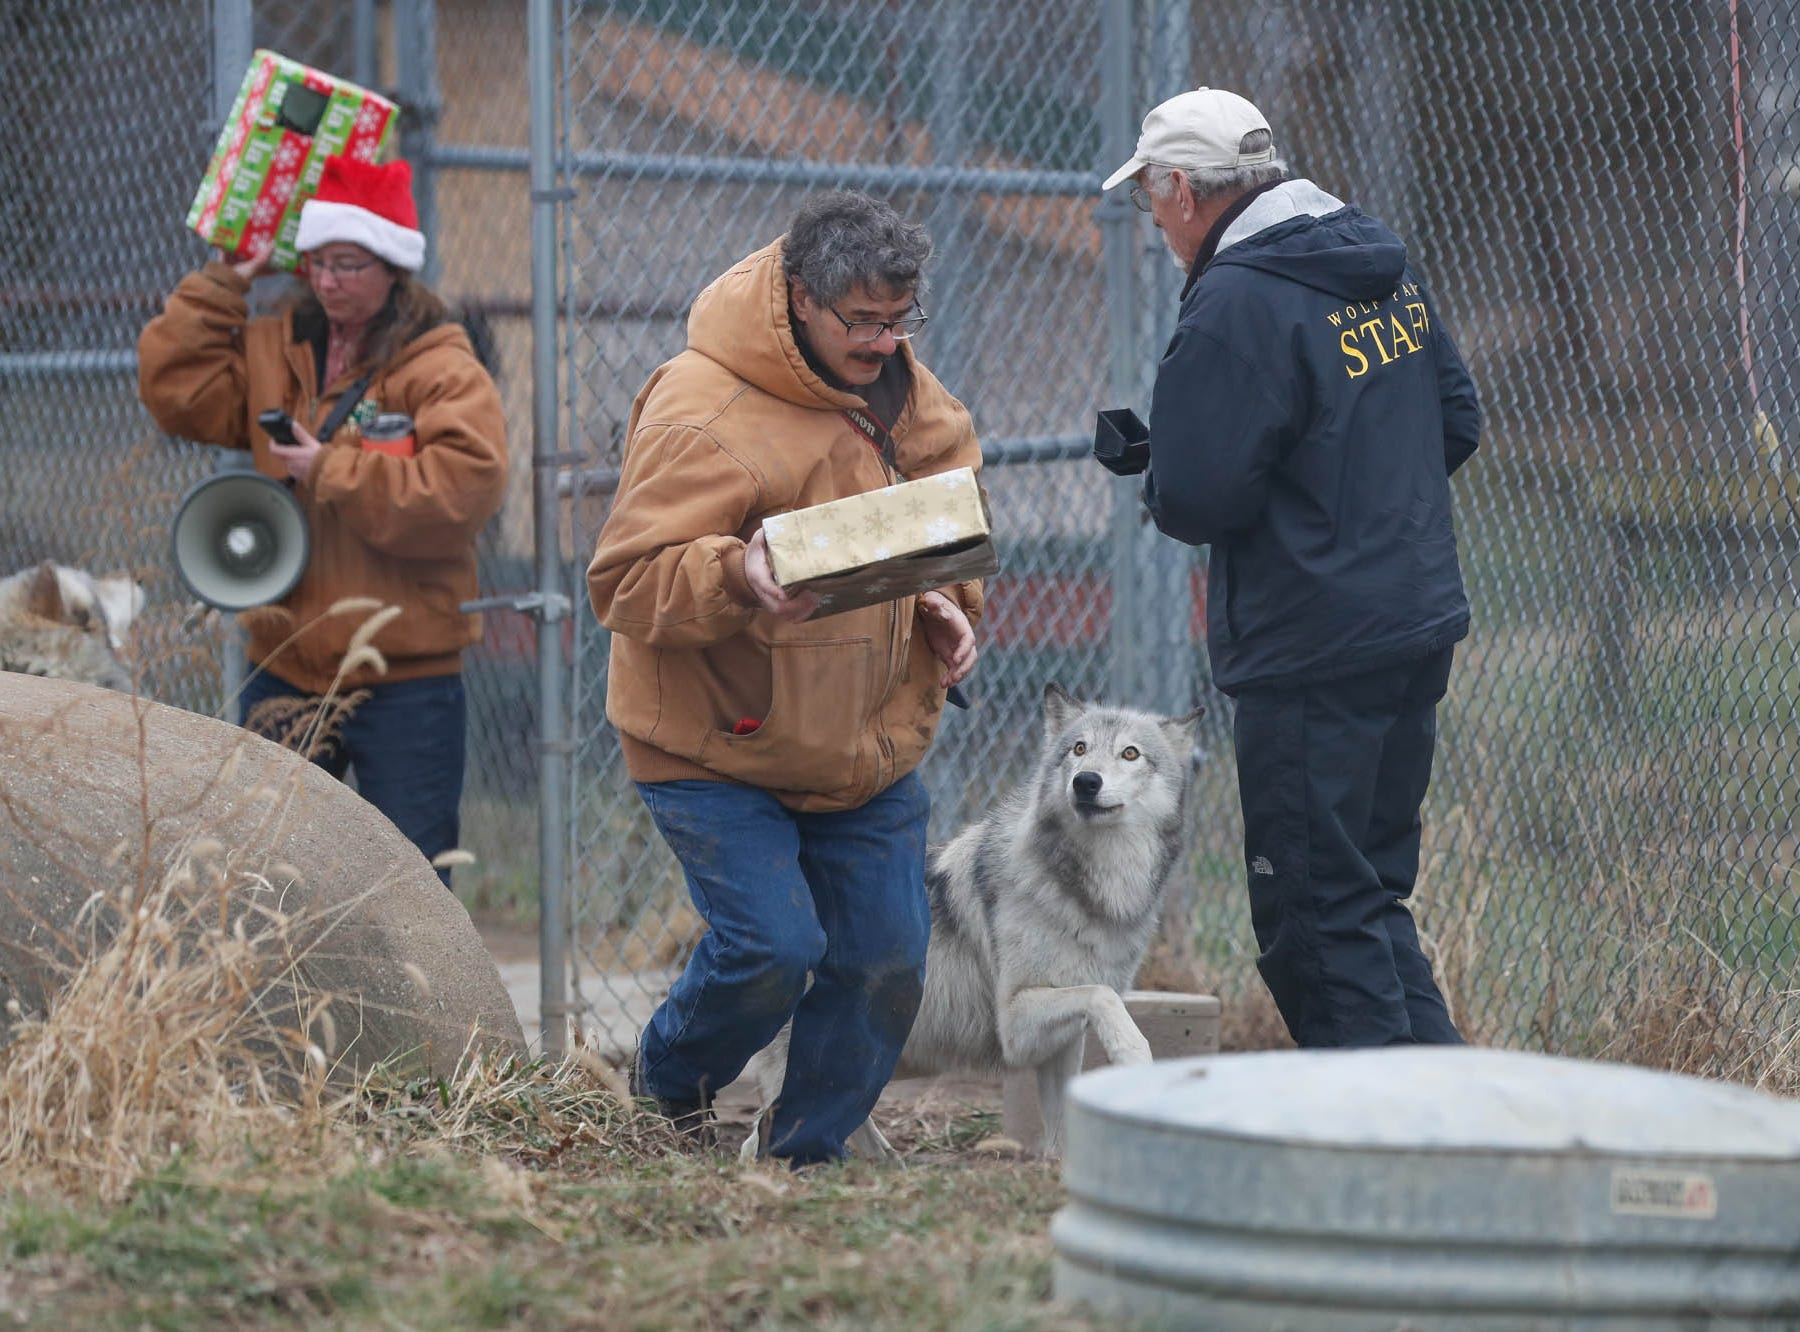 Left to right, Wolf Park Managing Director, Dana Drenzek, left, Park Photographer and Animal Care Staff member, Monty Sloan, and Park Board Member, Tom OÕDowd,  during Santa's visit to Wolf Park in Battle Ground Indiana on Saturday, Dec. 15, 2018.